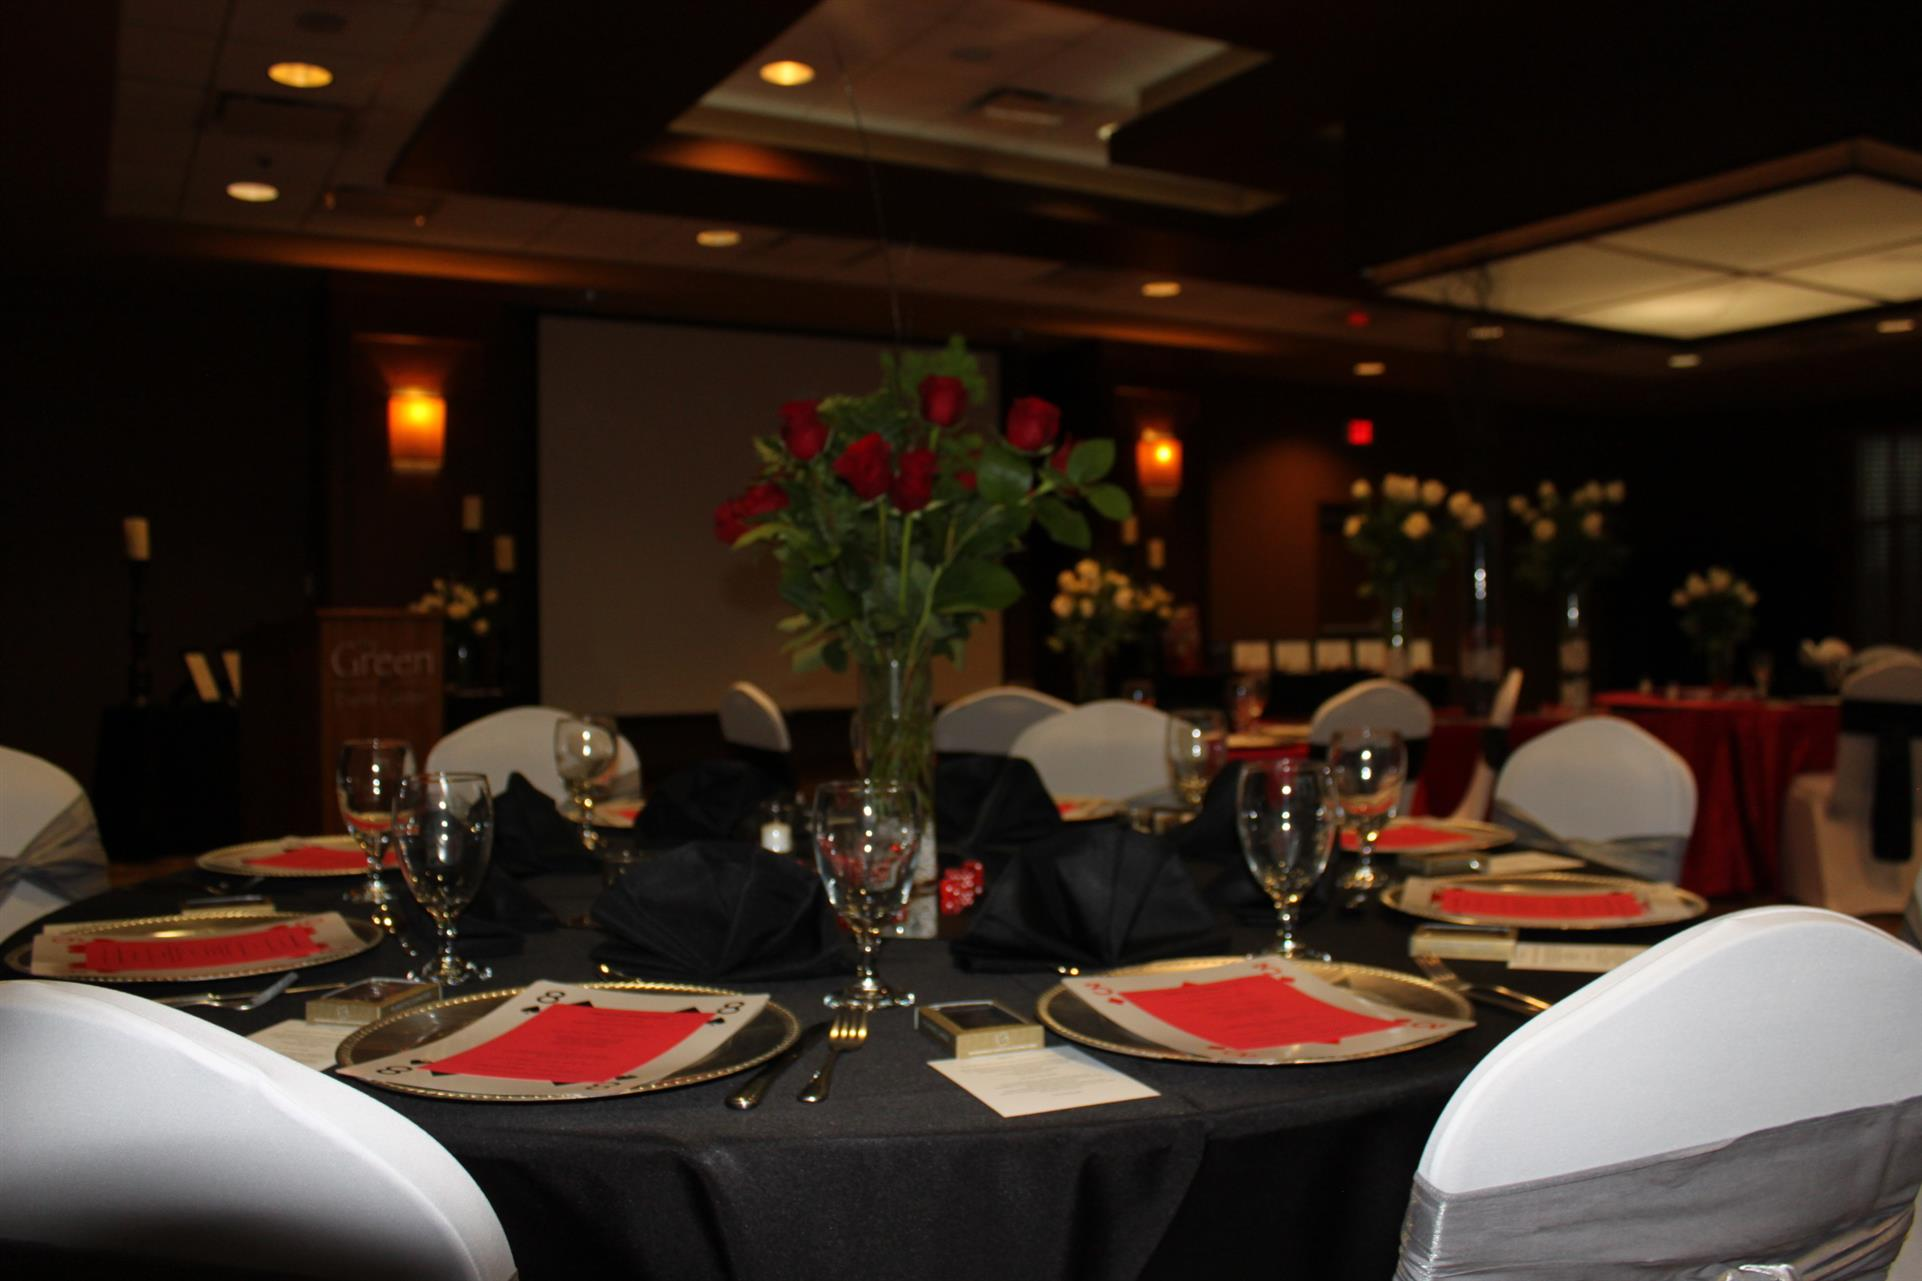 event space set for casino themed party with flowers and feather centerpieces